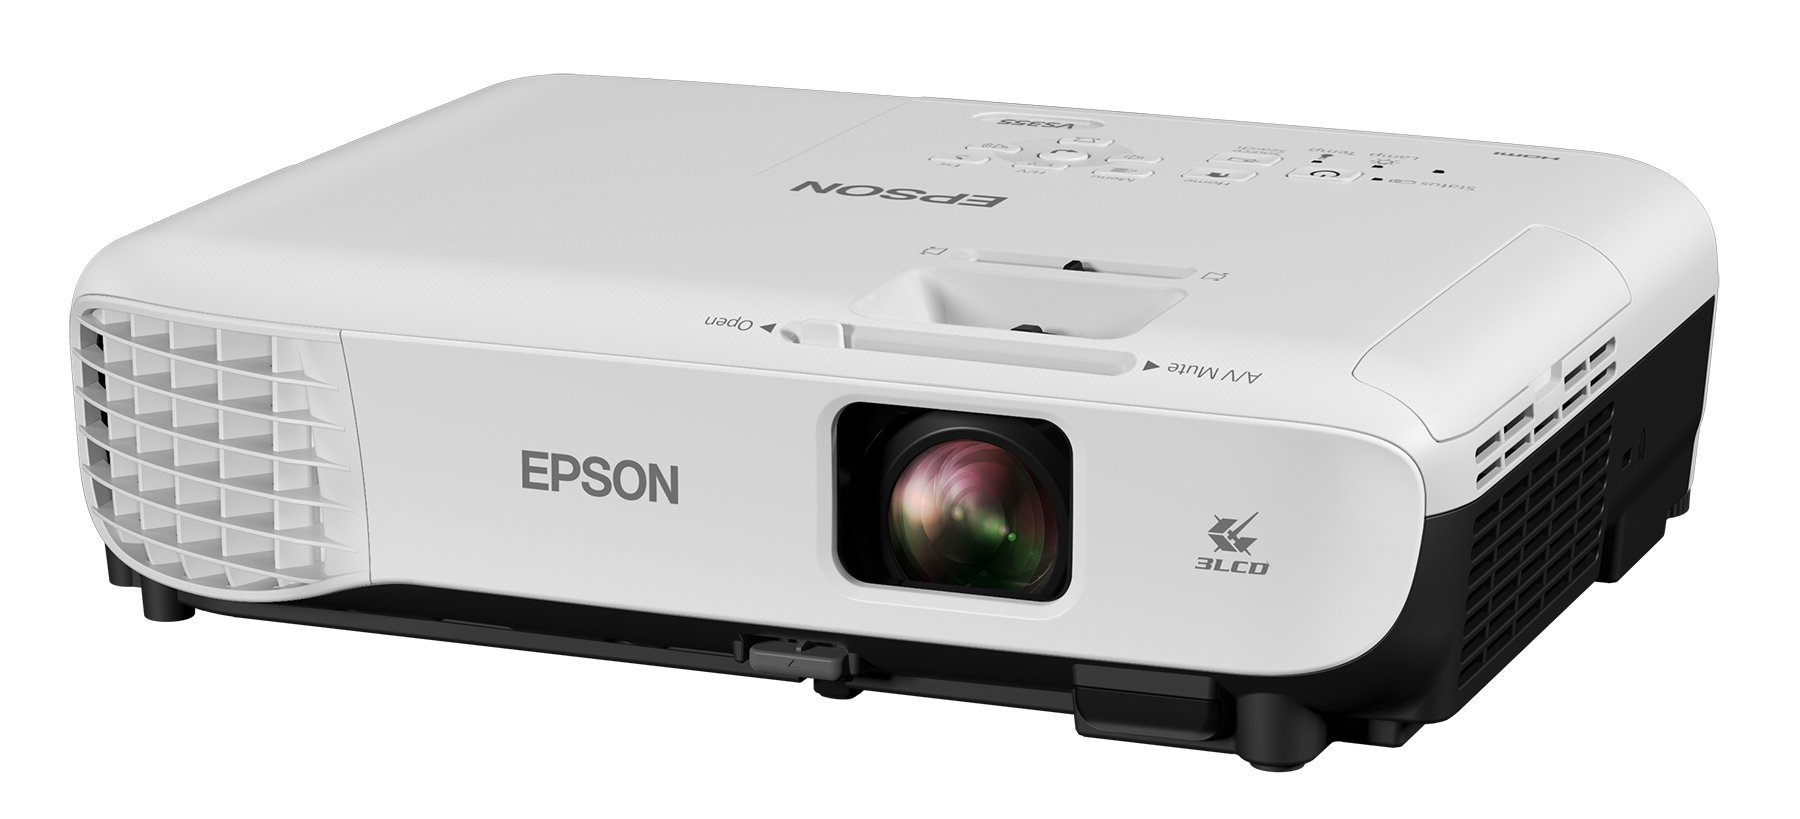 Epson VS355 WXGA 3,300 lumens color brightness (color light output) 3,300 lumens white brightness (white light output) HDMI 3LCD projector by Epson